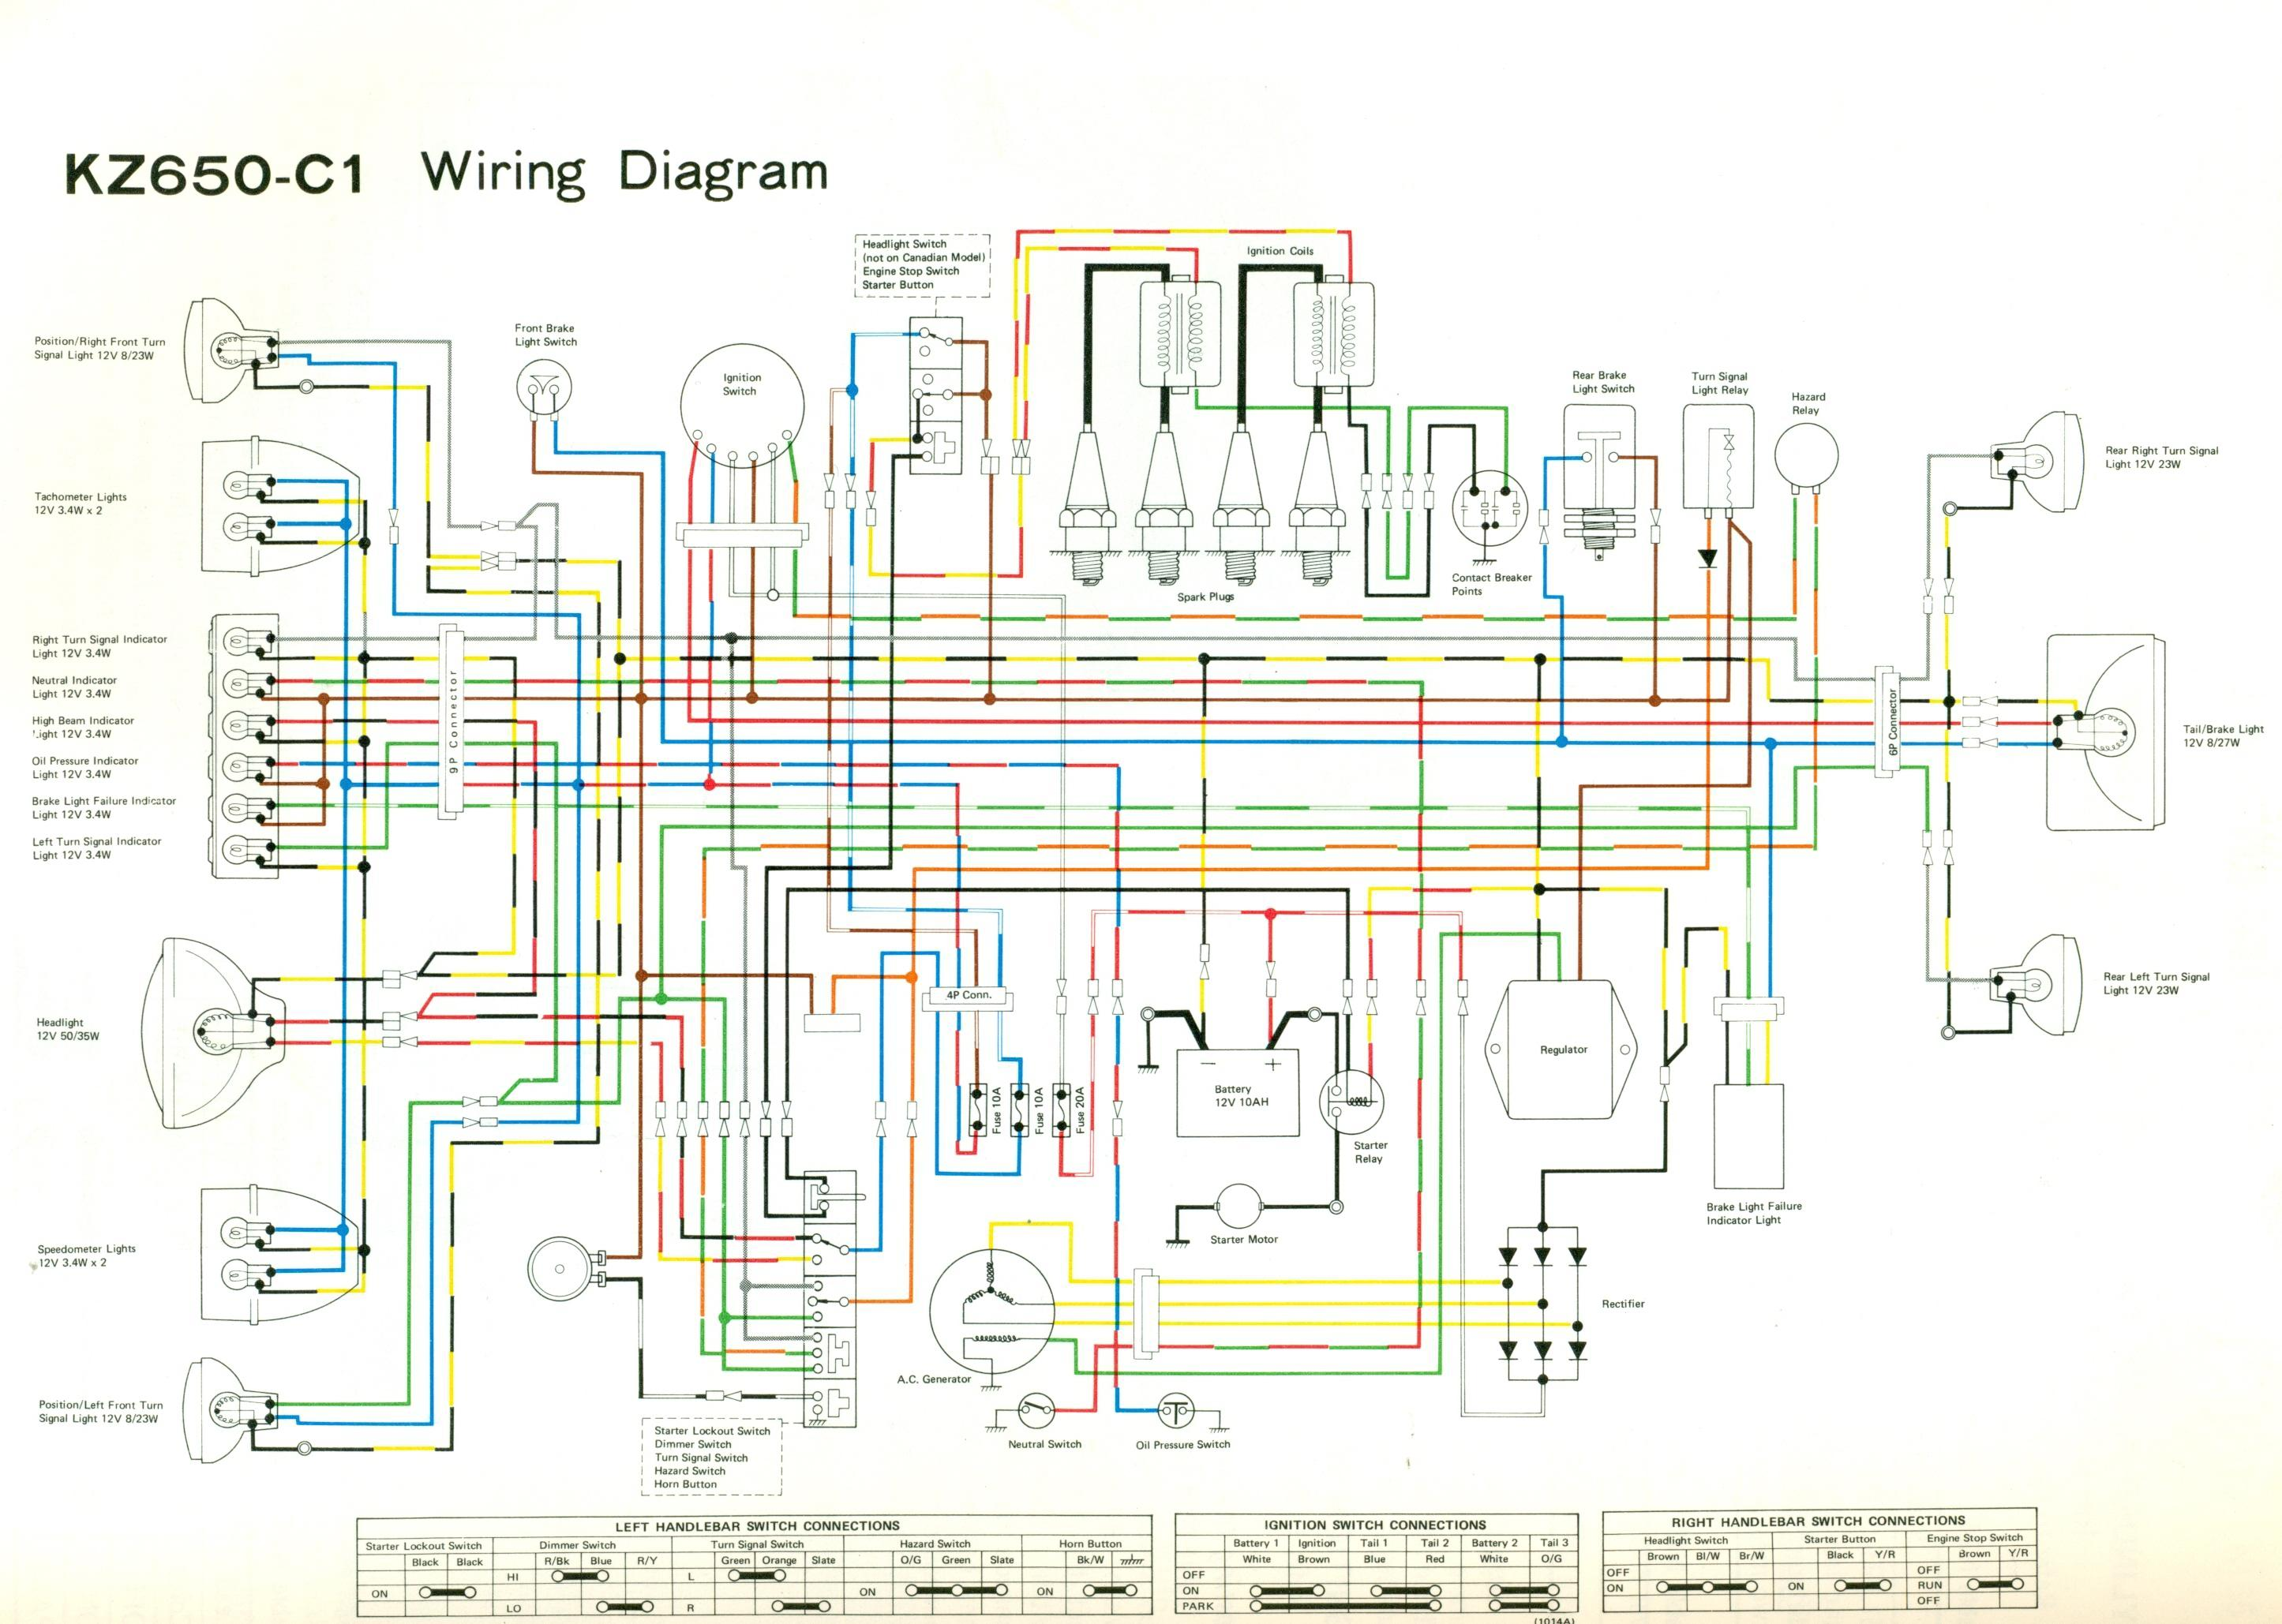 Wiring Diagrams. Kz650c. Wiring. 1994 Klr 650 Wiring Schematic At Scoala.co